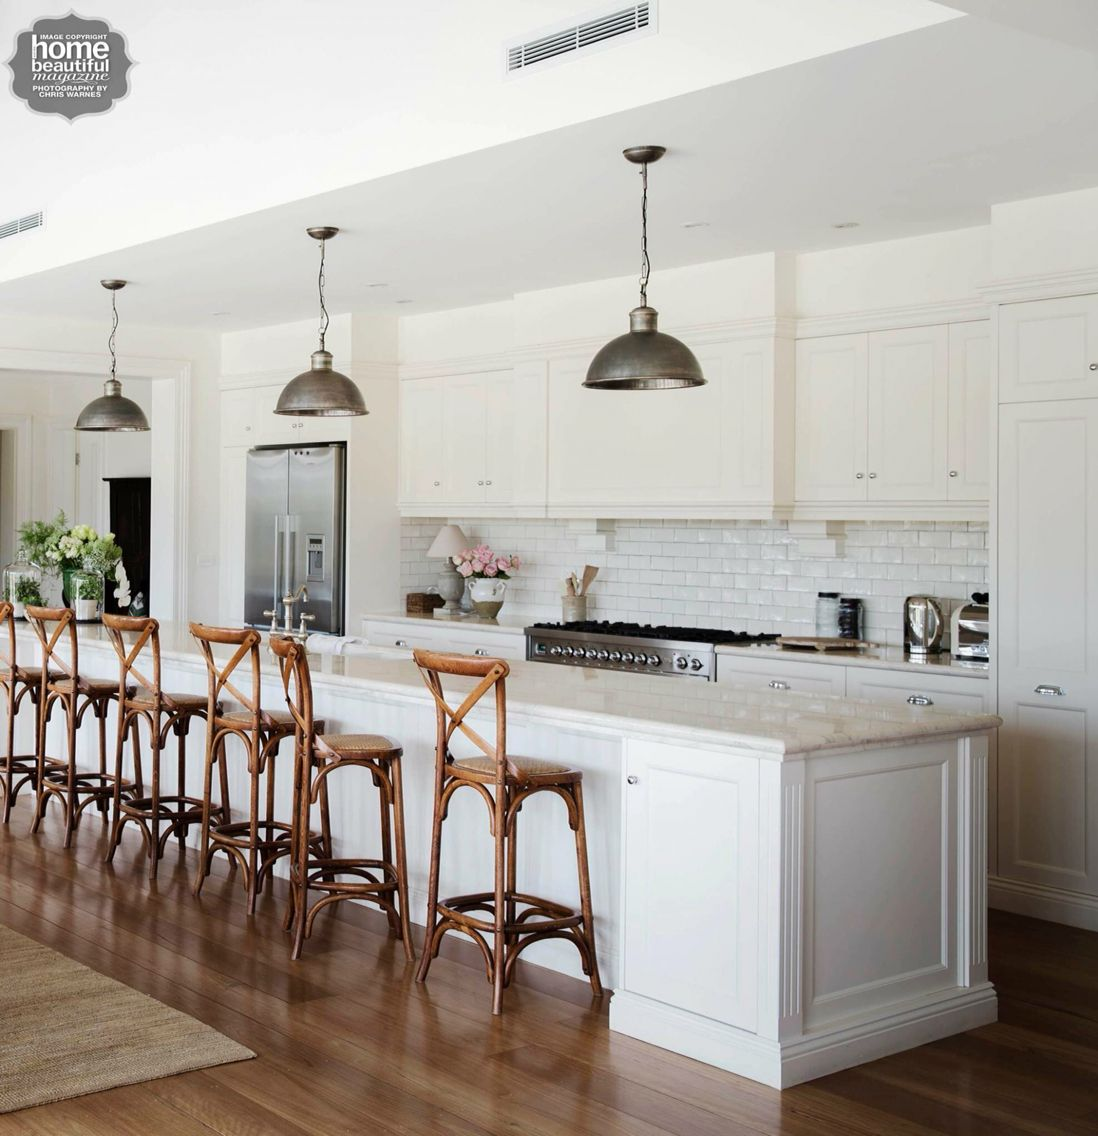 French Provincial Cuisine French Provincial Kitchen With White Subway Tile And